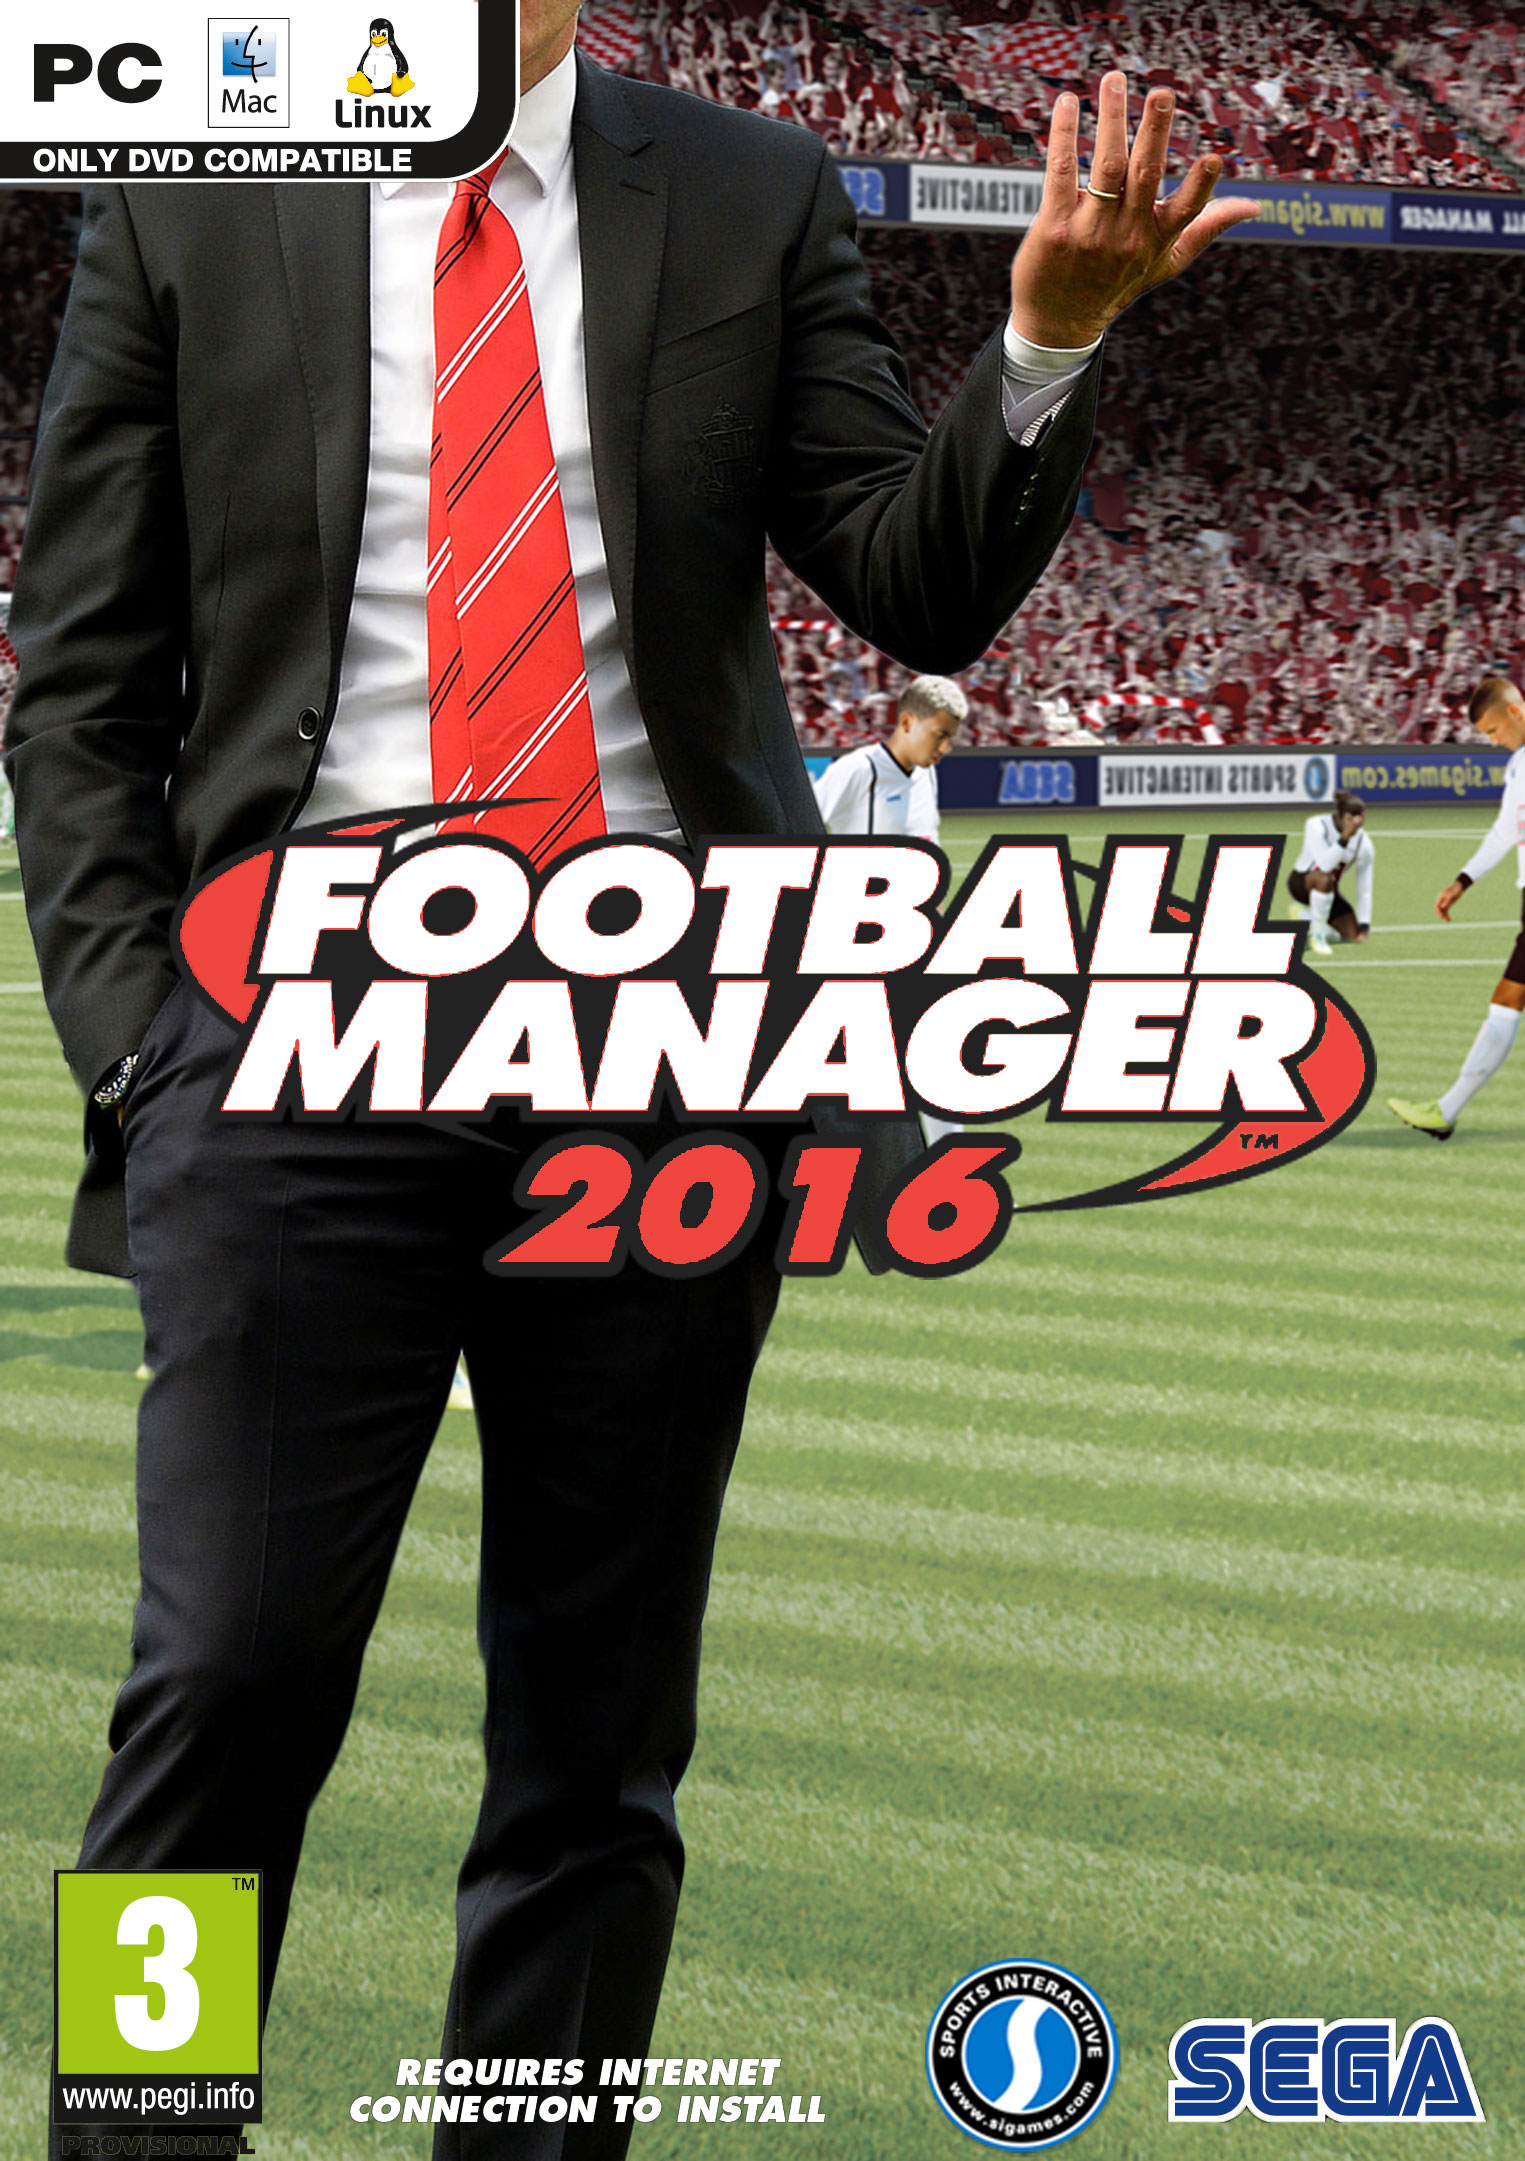 Football Manager 2016 FM16 (Steam KEY ROW REGION FREE)